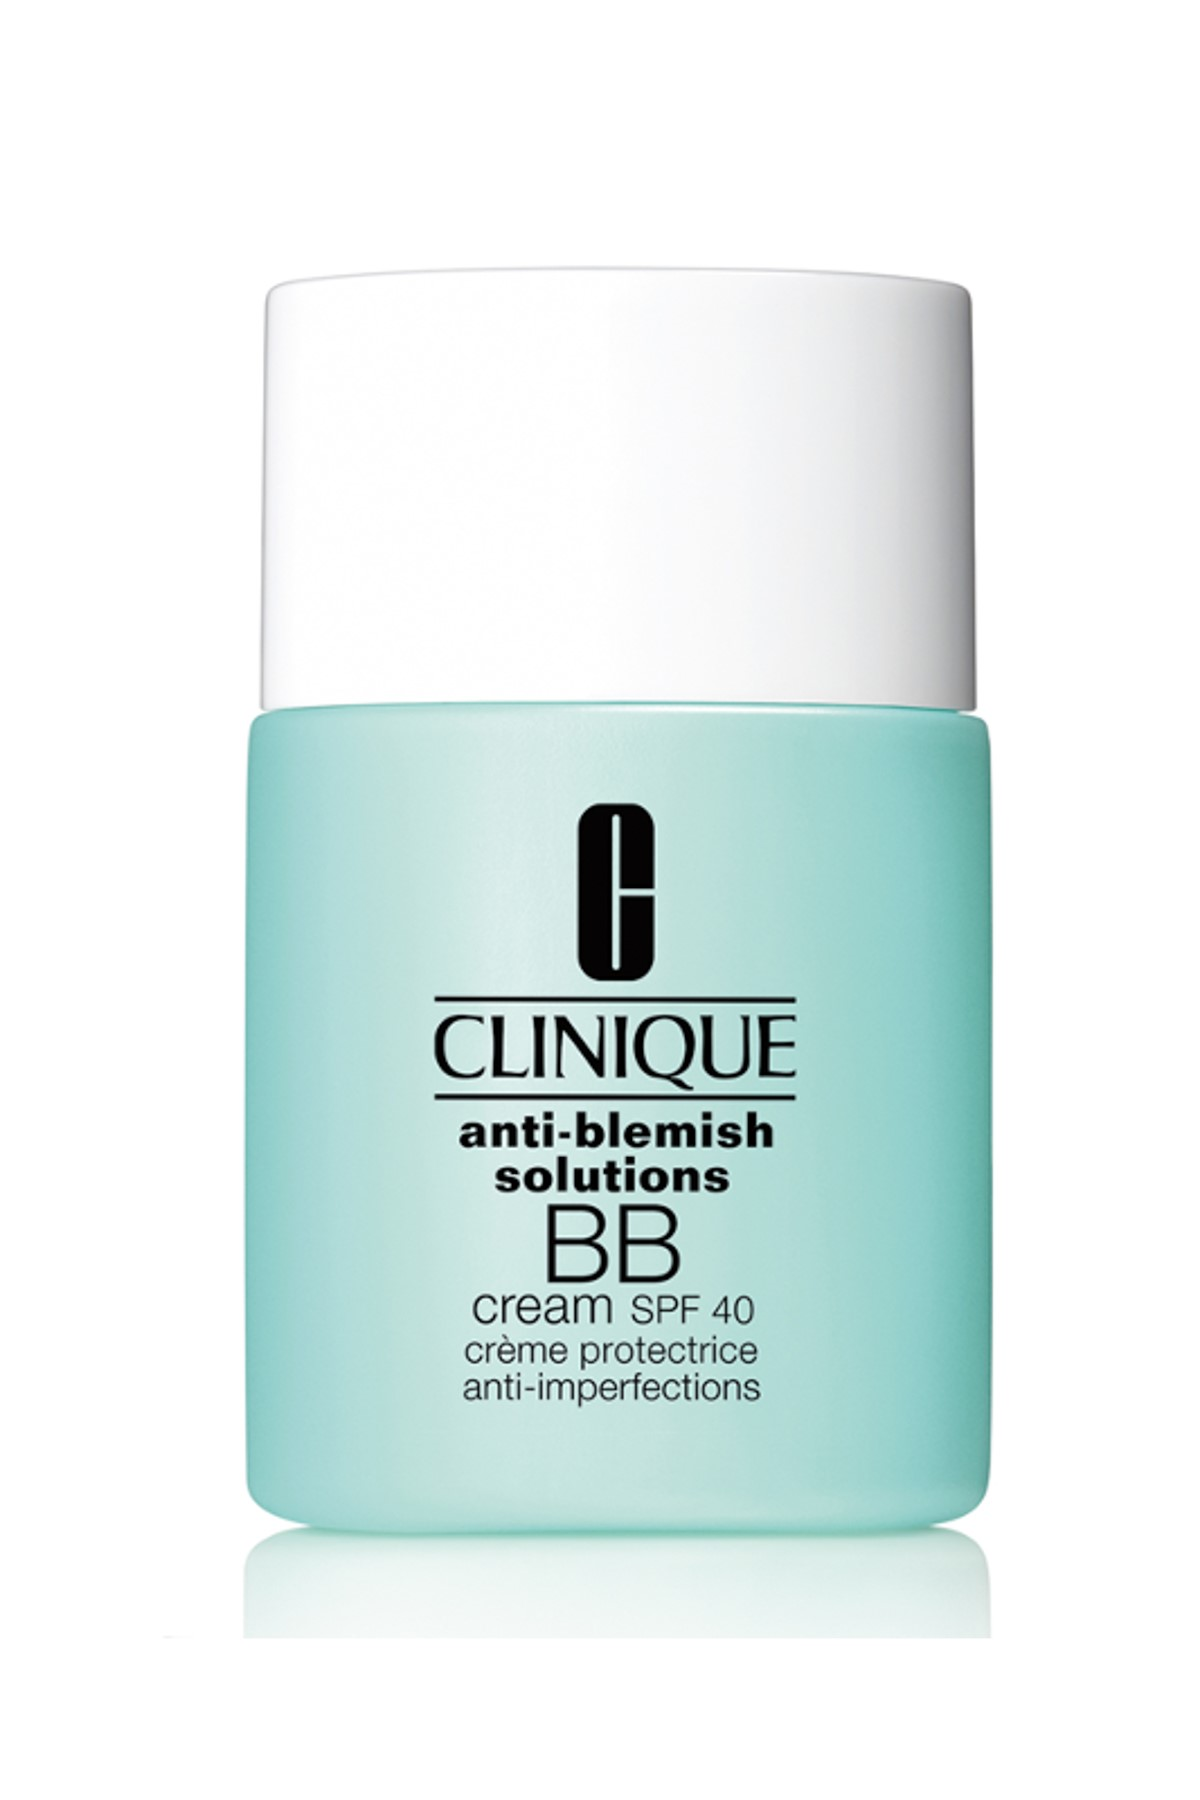 Clinique Akneli Ciltler için BB Krem - Anti Blemish Solutions BB Cream Spf 40 05 Deep 30 ml 020714694678 1